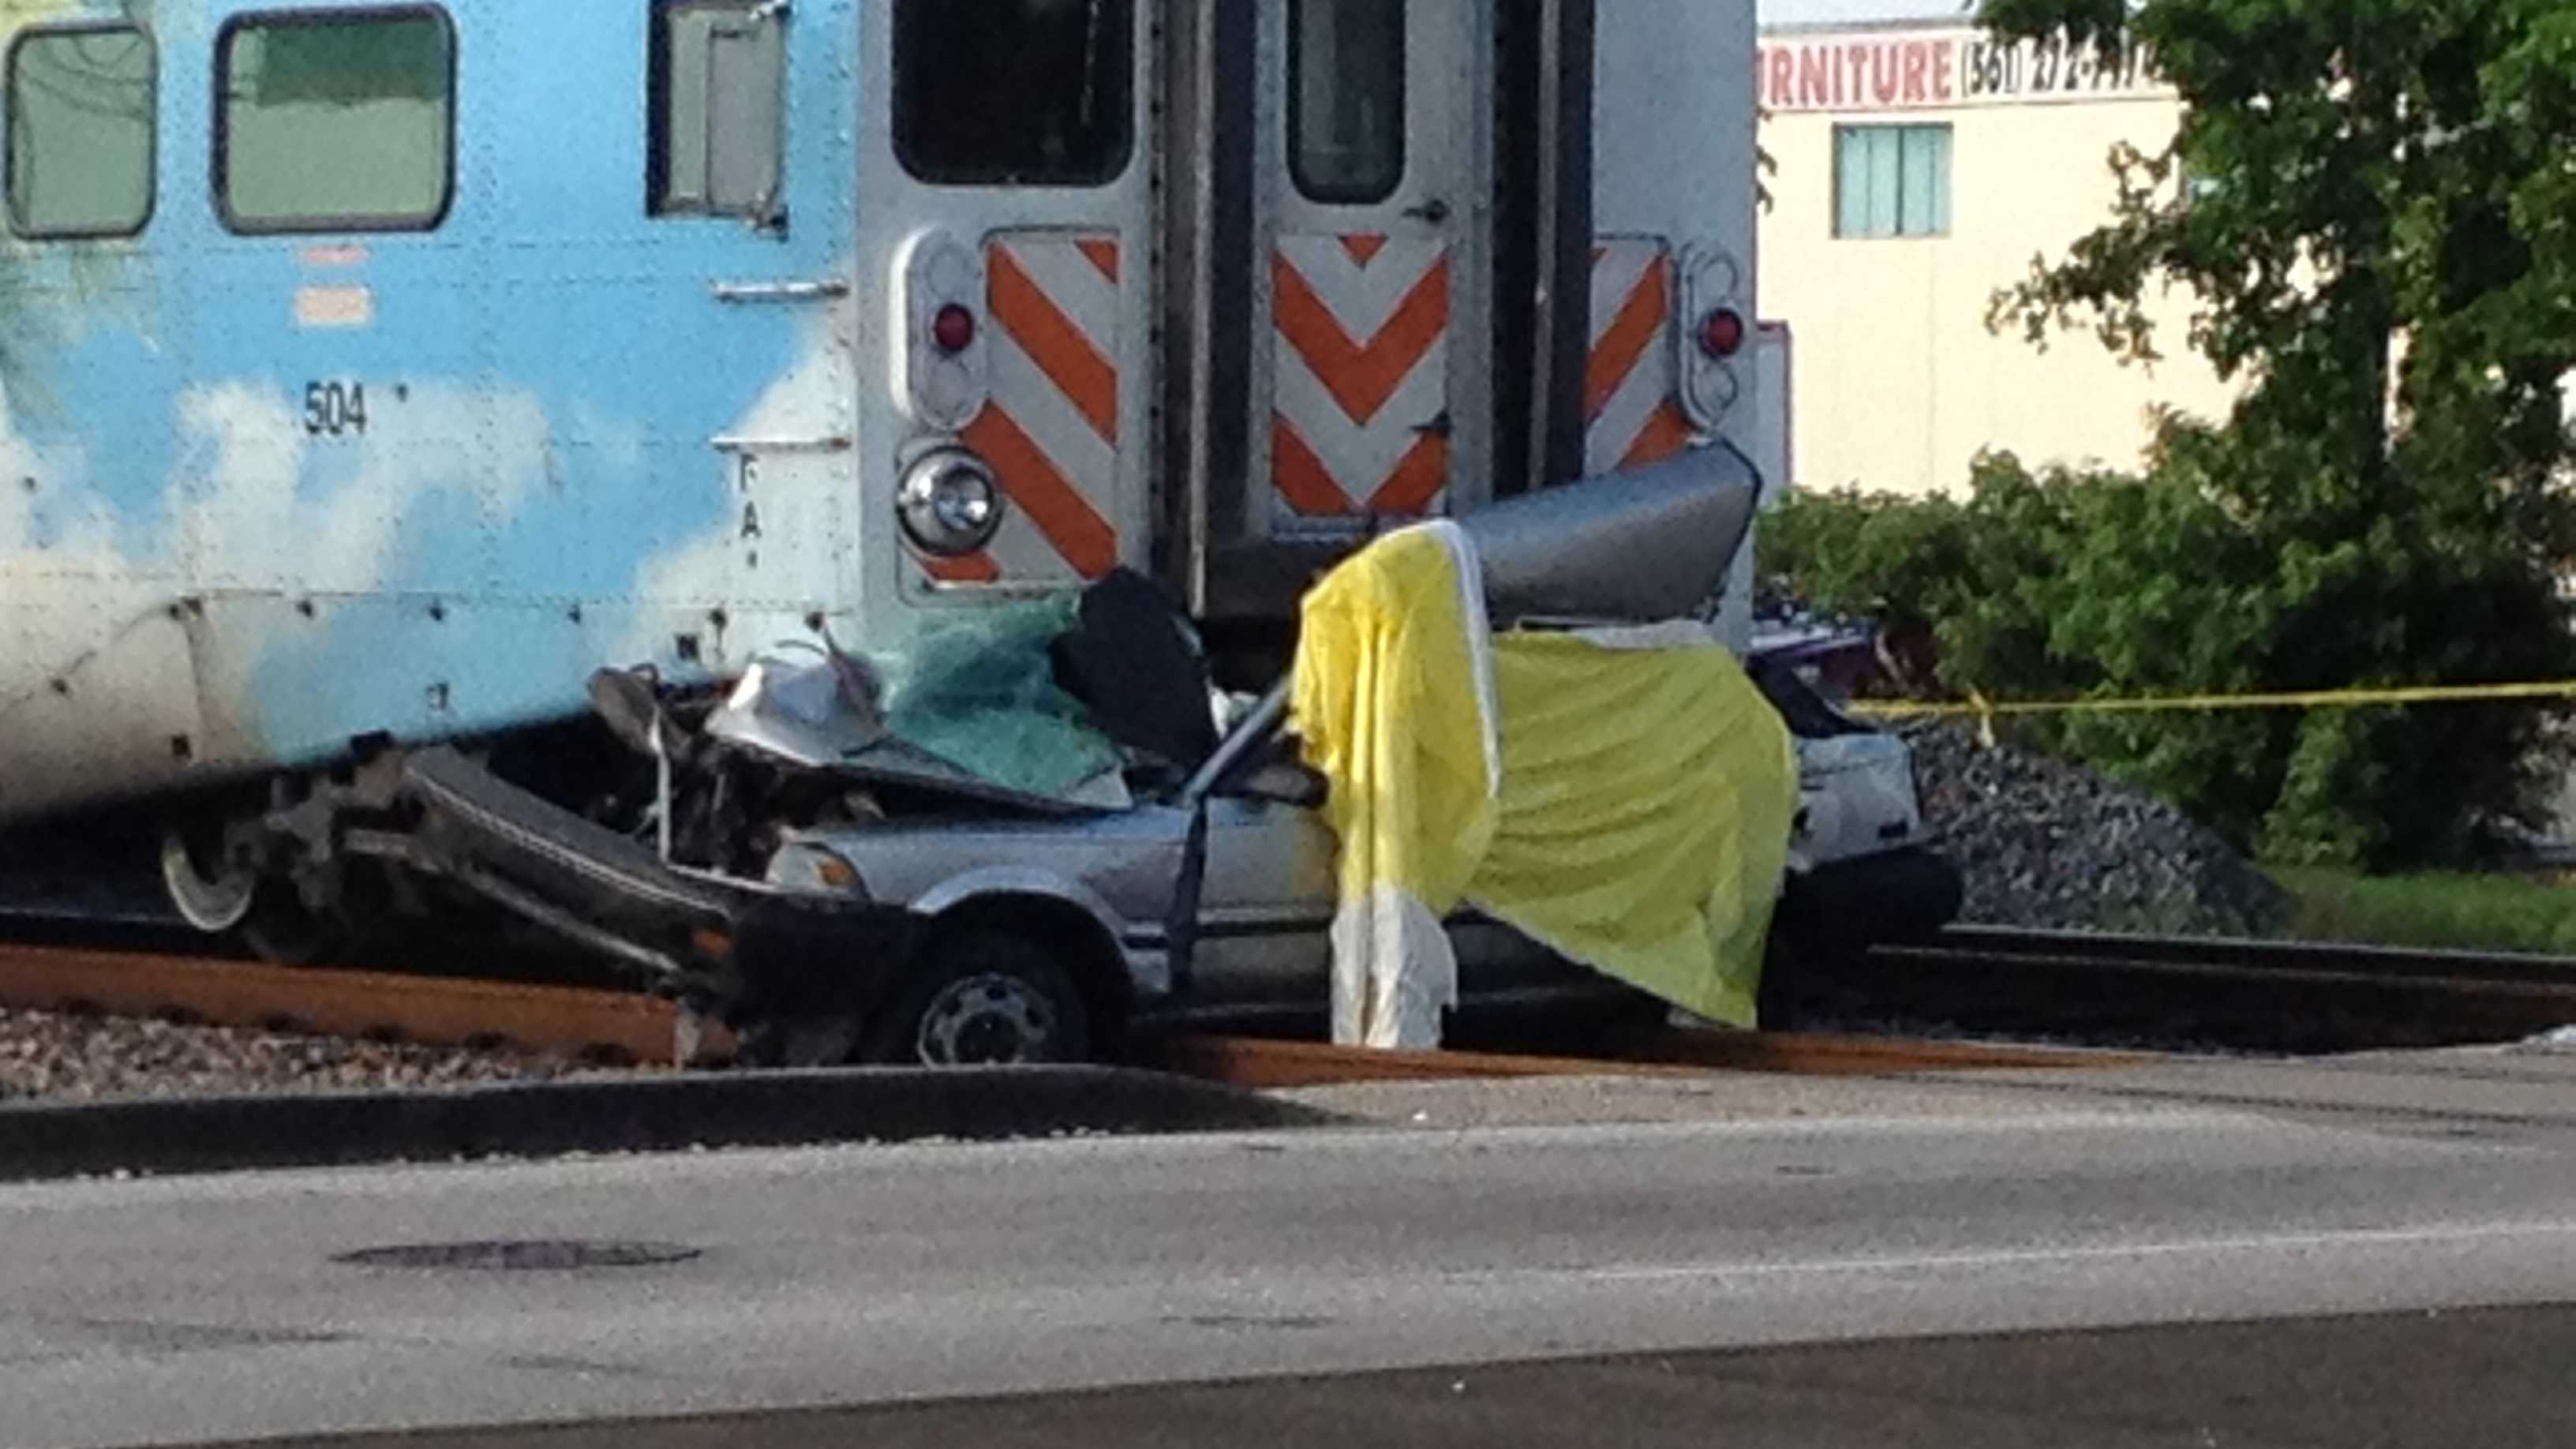 One person was dead after a Tri-Rail train and a vehicle collided in Delray Beach on Wednesday morning. (Photo: Chris McGrath/WPBF)